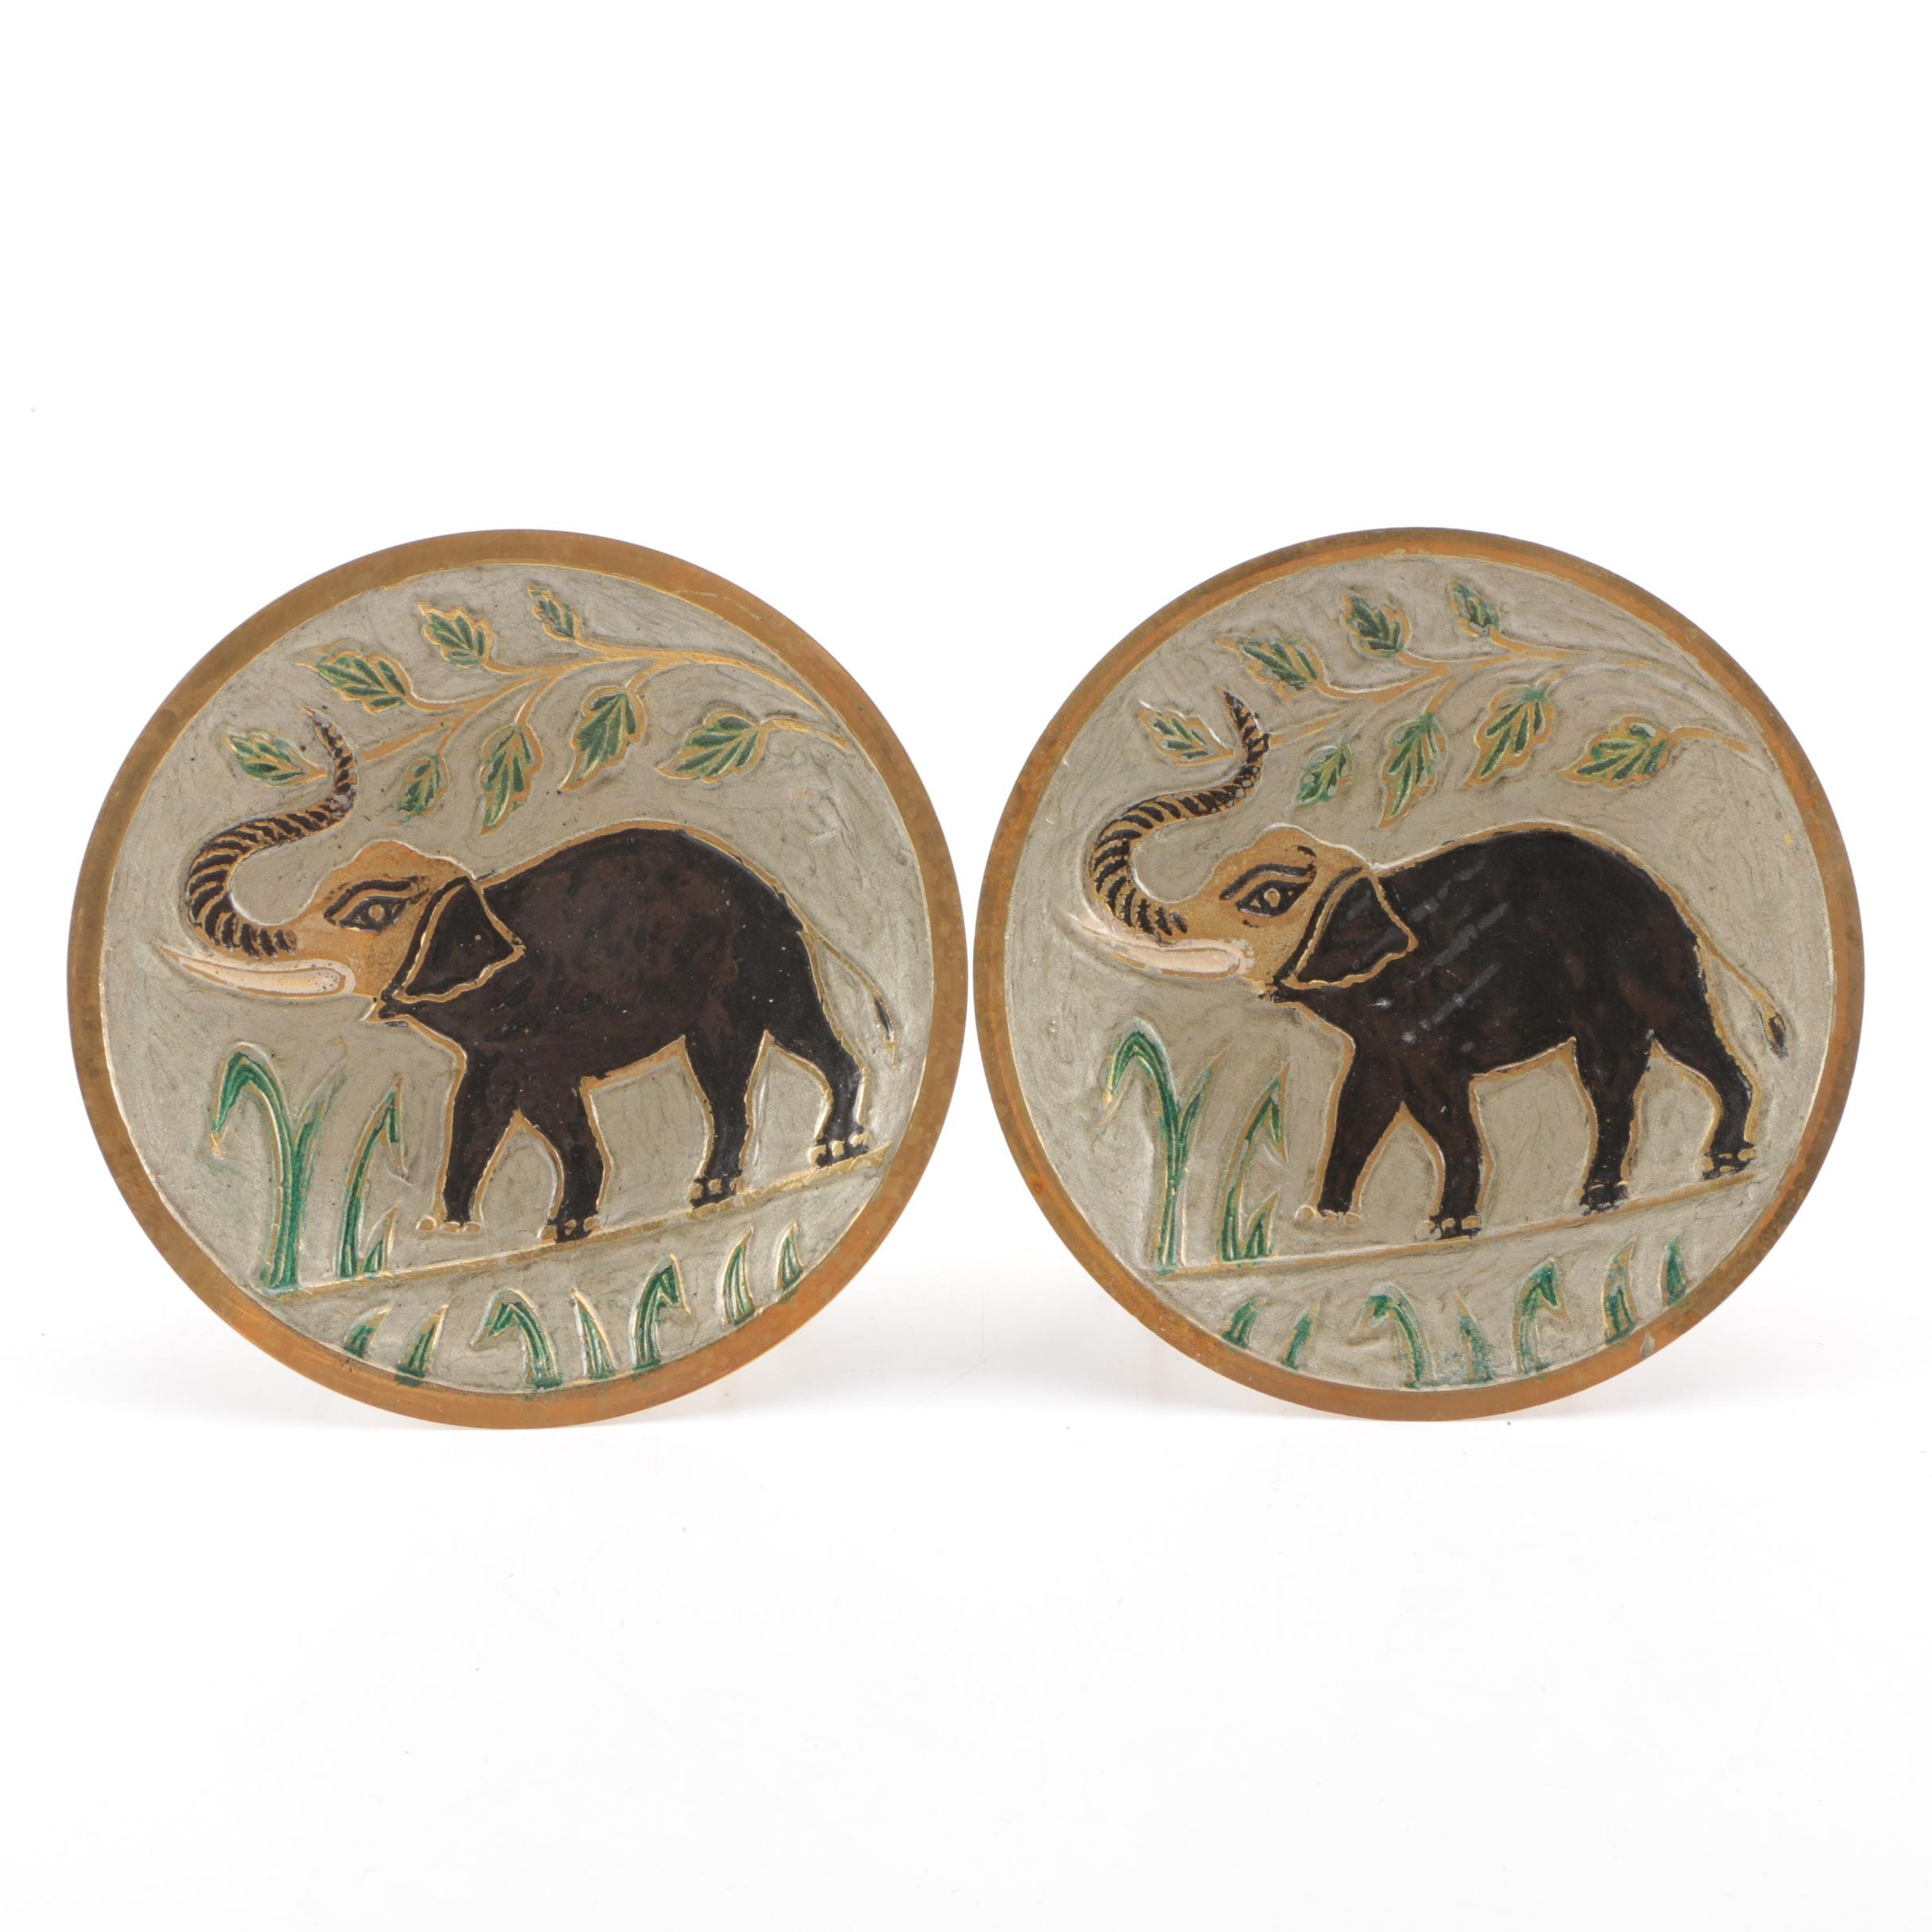 Pair of Painted Brass Plates Depicting Elephants